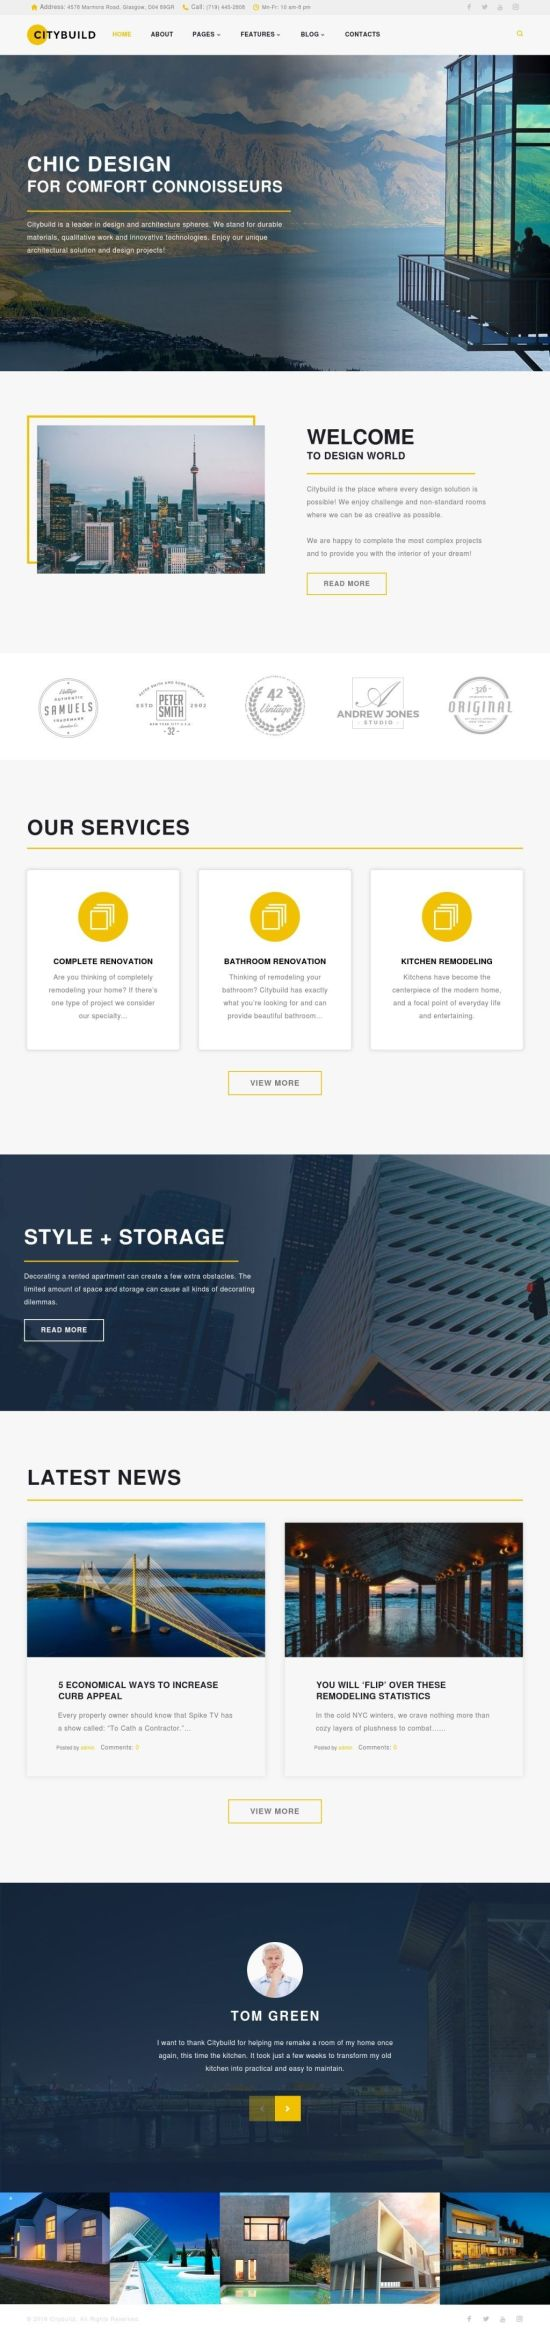 citybuild wordpress theme 01 - Citybuild Wordpress Theme